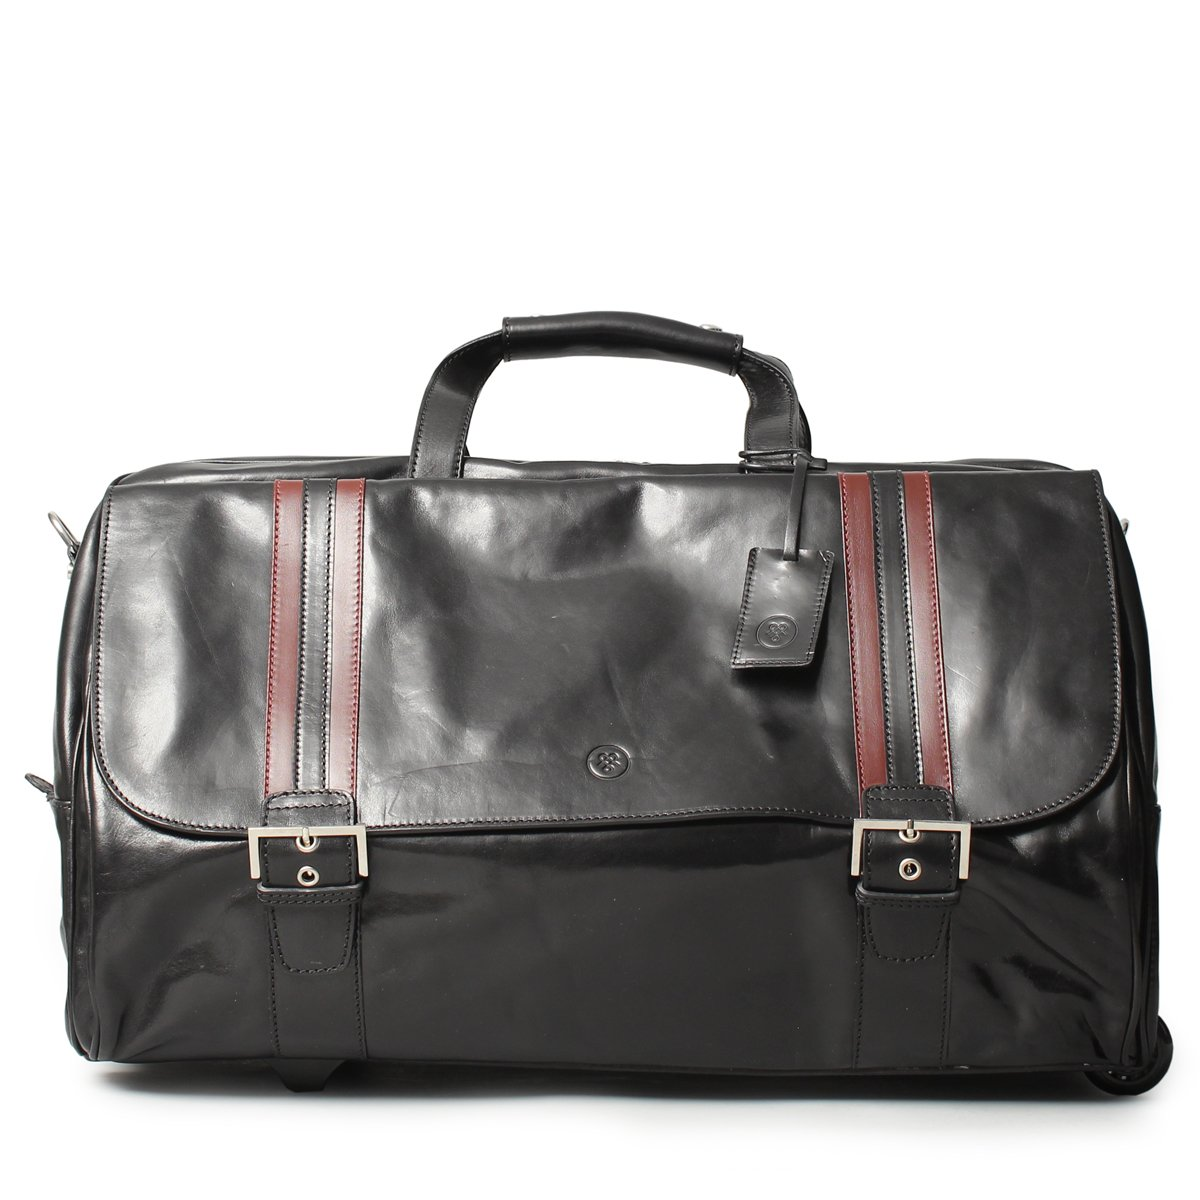 Maxwell Scott Luxury Black Leather Wheeled Travel Bag (The DinoL) - Large